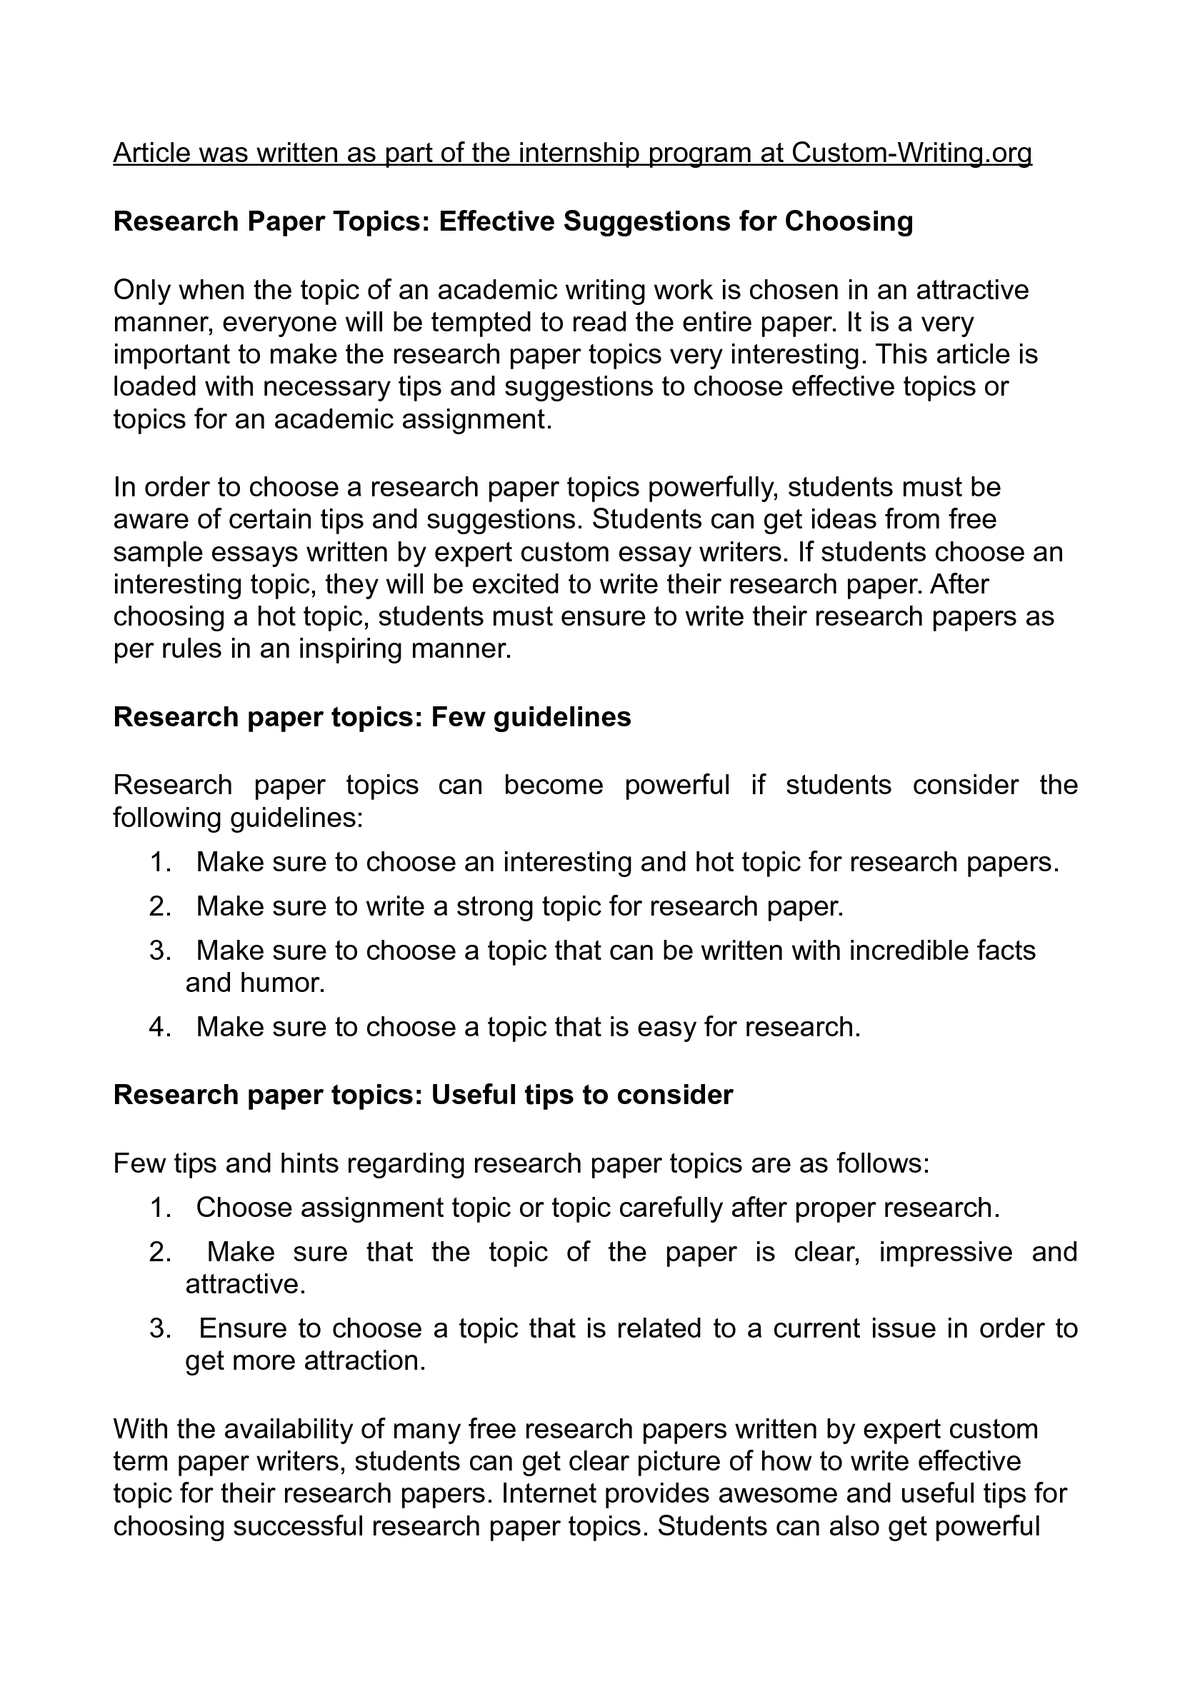 Fire Prevention Essay Ideas On Responsibility